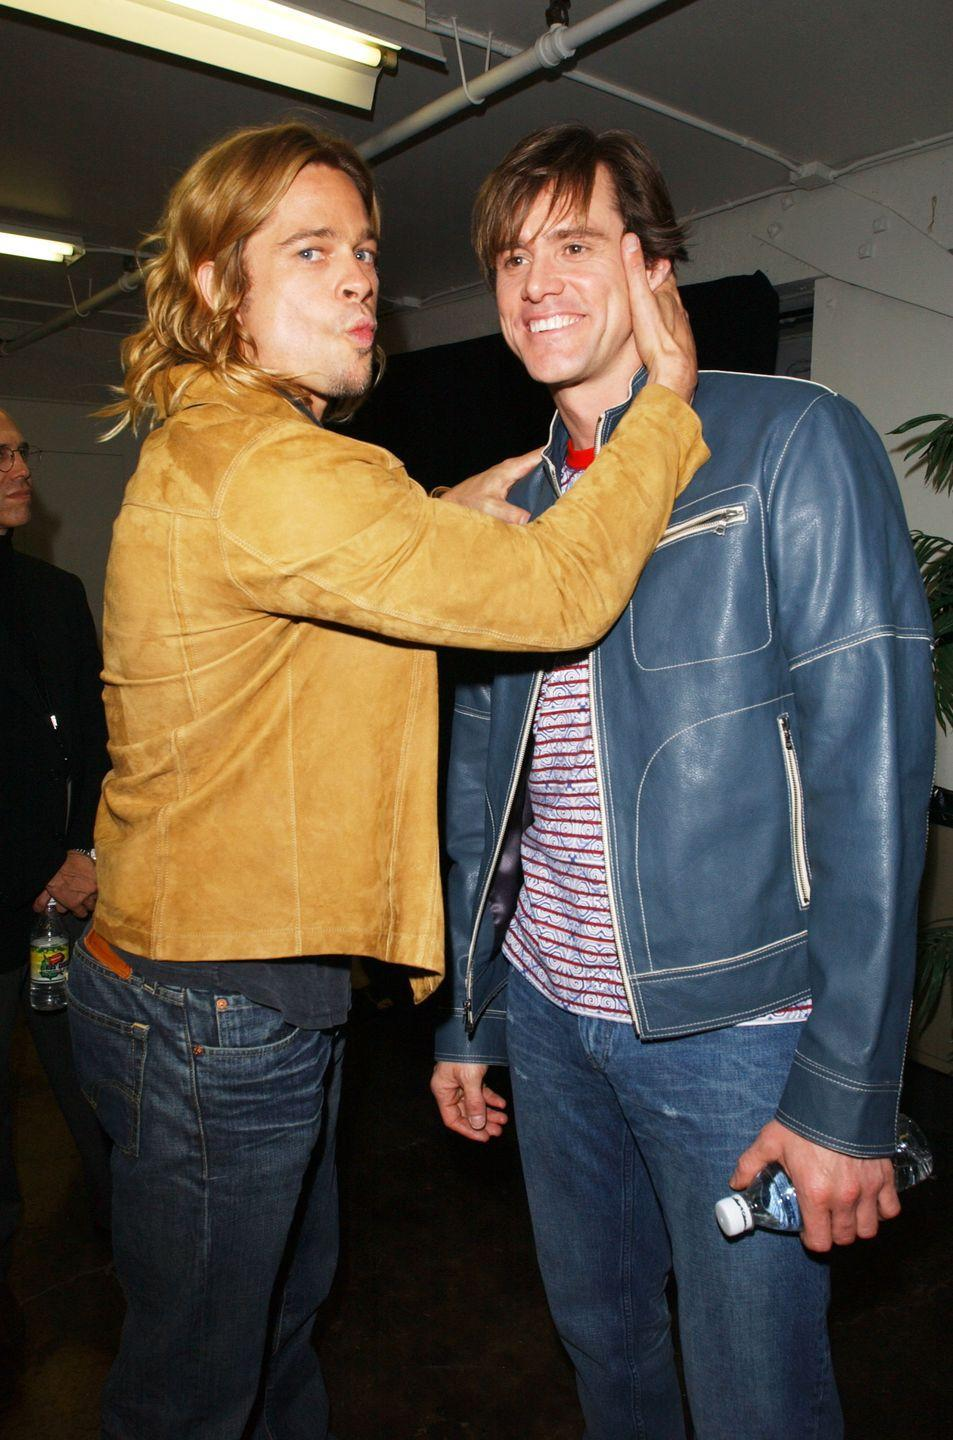 """<p>Pitt poses with Jim Carrey backstage at the Nickelodeon Kids' Choice Awards in April 2003. Carrey said on <a href=""""https://www.smh.com.au/entertainment/celebrity/jim-carrey-blasts-tom-cruise-20091111-i89a.html"""" rel=""""nofollow noopener"""" target=""""_blank"""" data-ylk=""""slk:Chelsea Lately"""" class=""""link rapid-noclick-resp""""><em>Chelsea Lately</em></a> in 2009 that Pitt """"can do no wrong.""""</p>"""